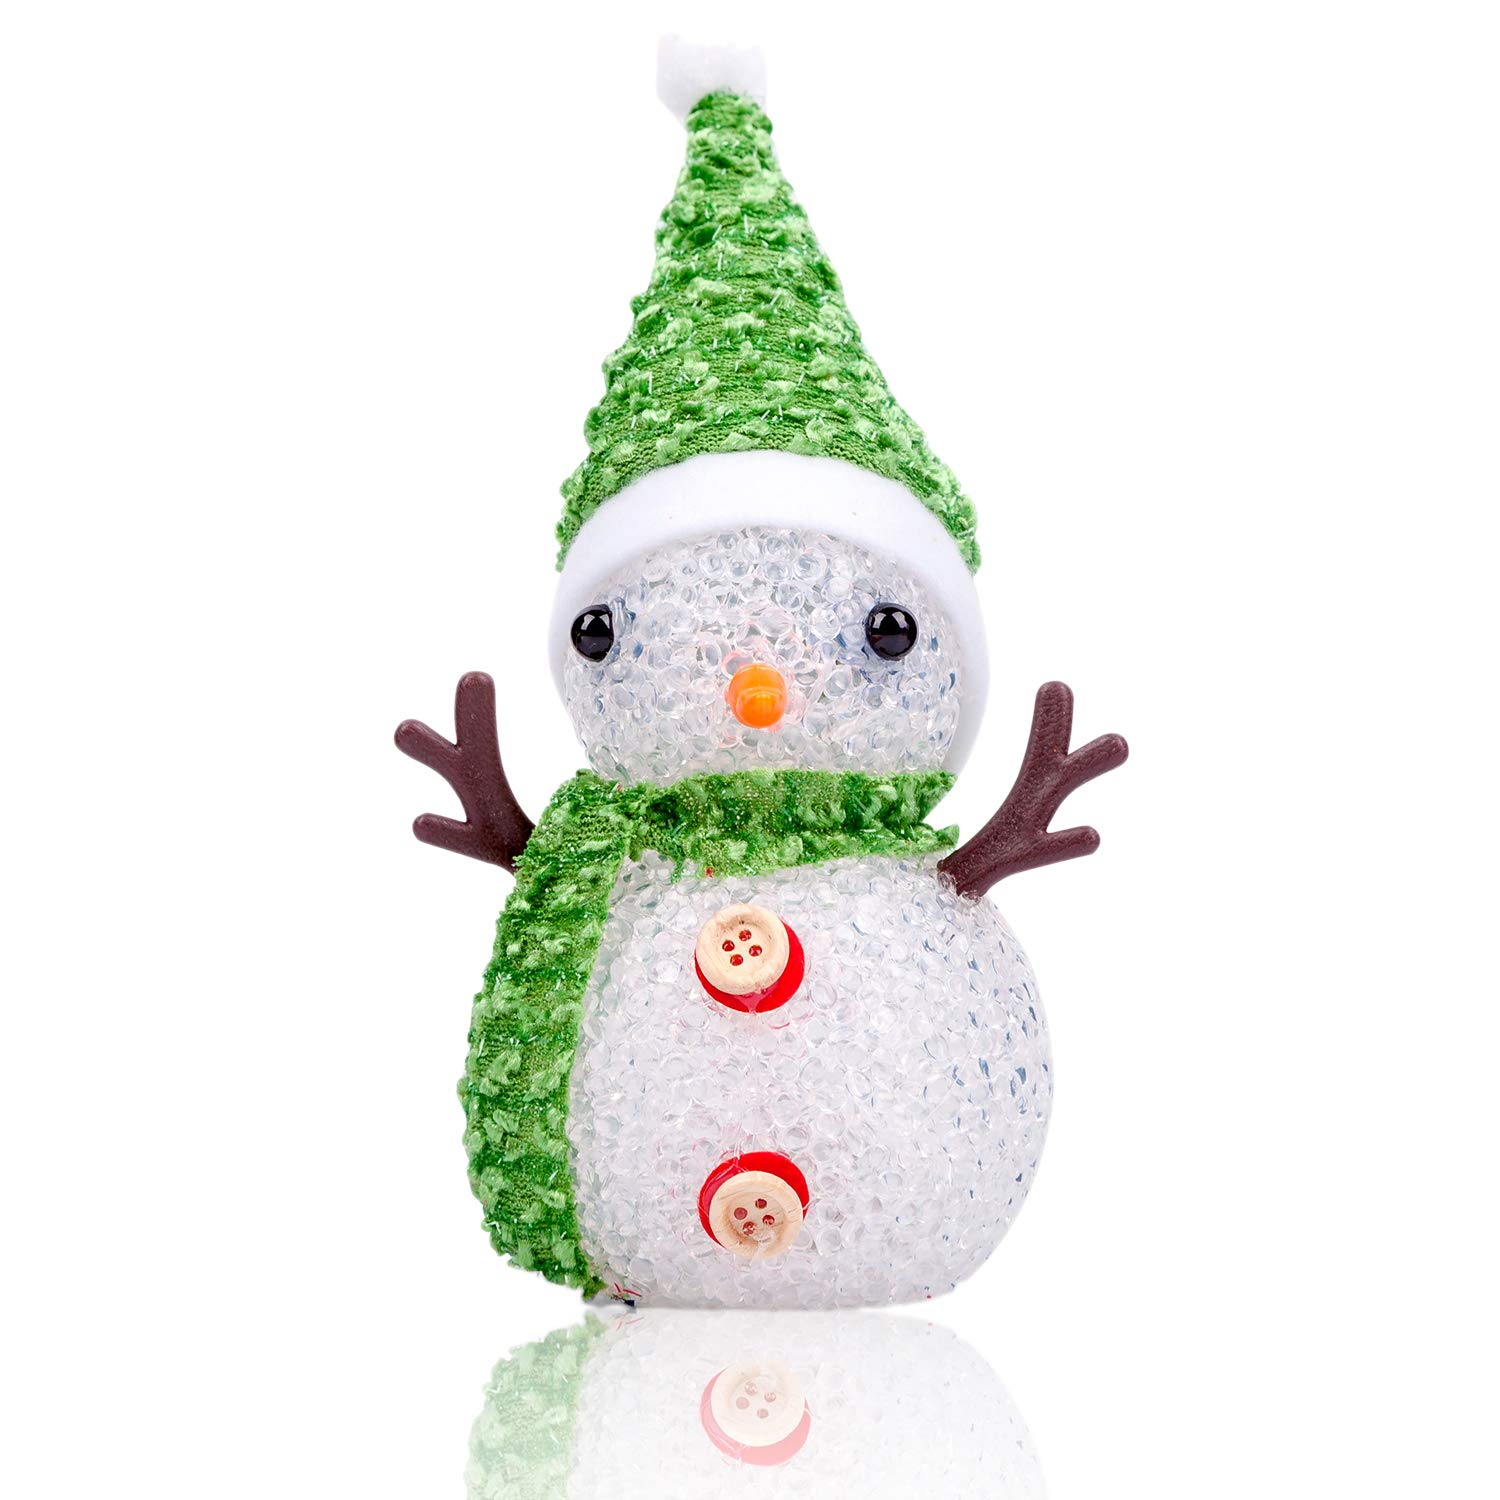 ModestLuxury Christmas Snowman Kids Night Light Multicolor Bedside Baby Nursery LED Lamp Room Decor for Women Bedroom Toy Decorations Battery Operated Blinking 7-Color, Strawberry Red Hat Scarf